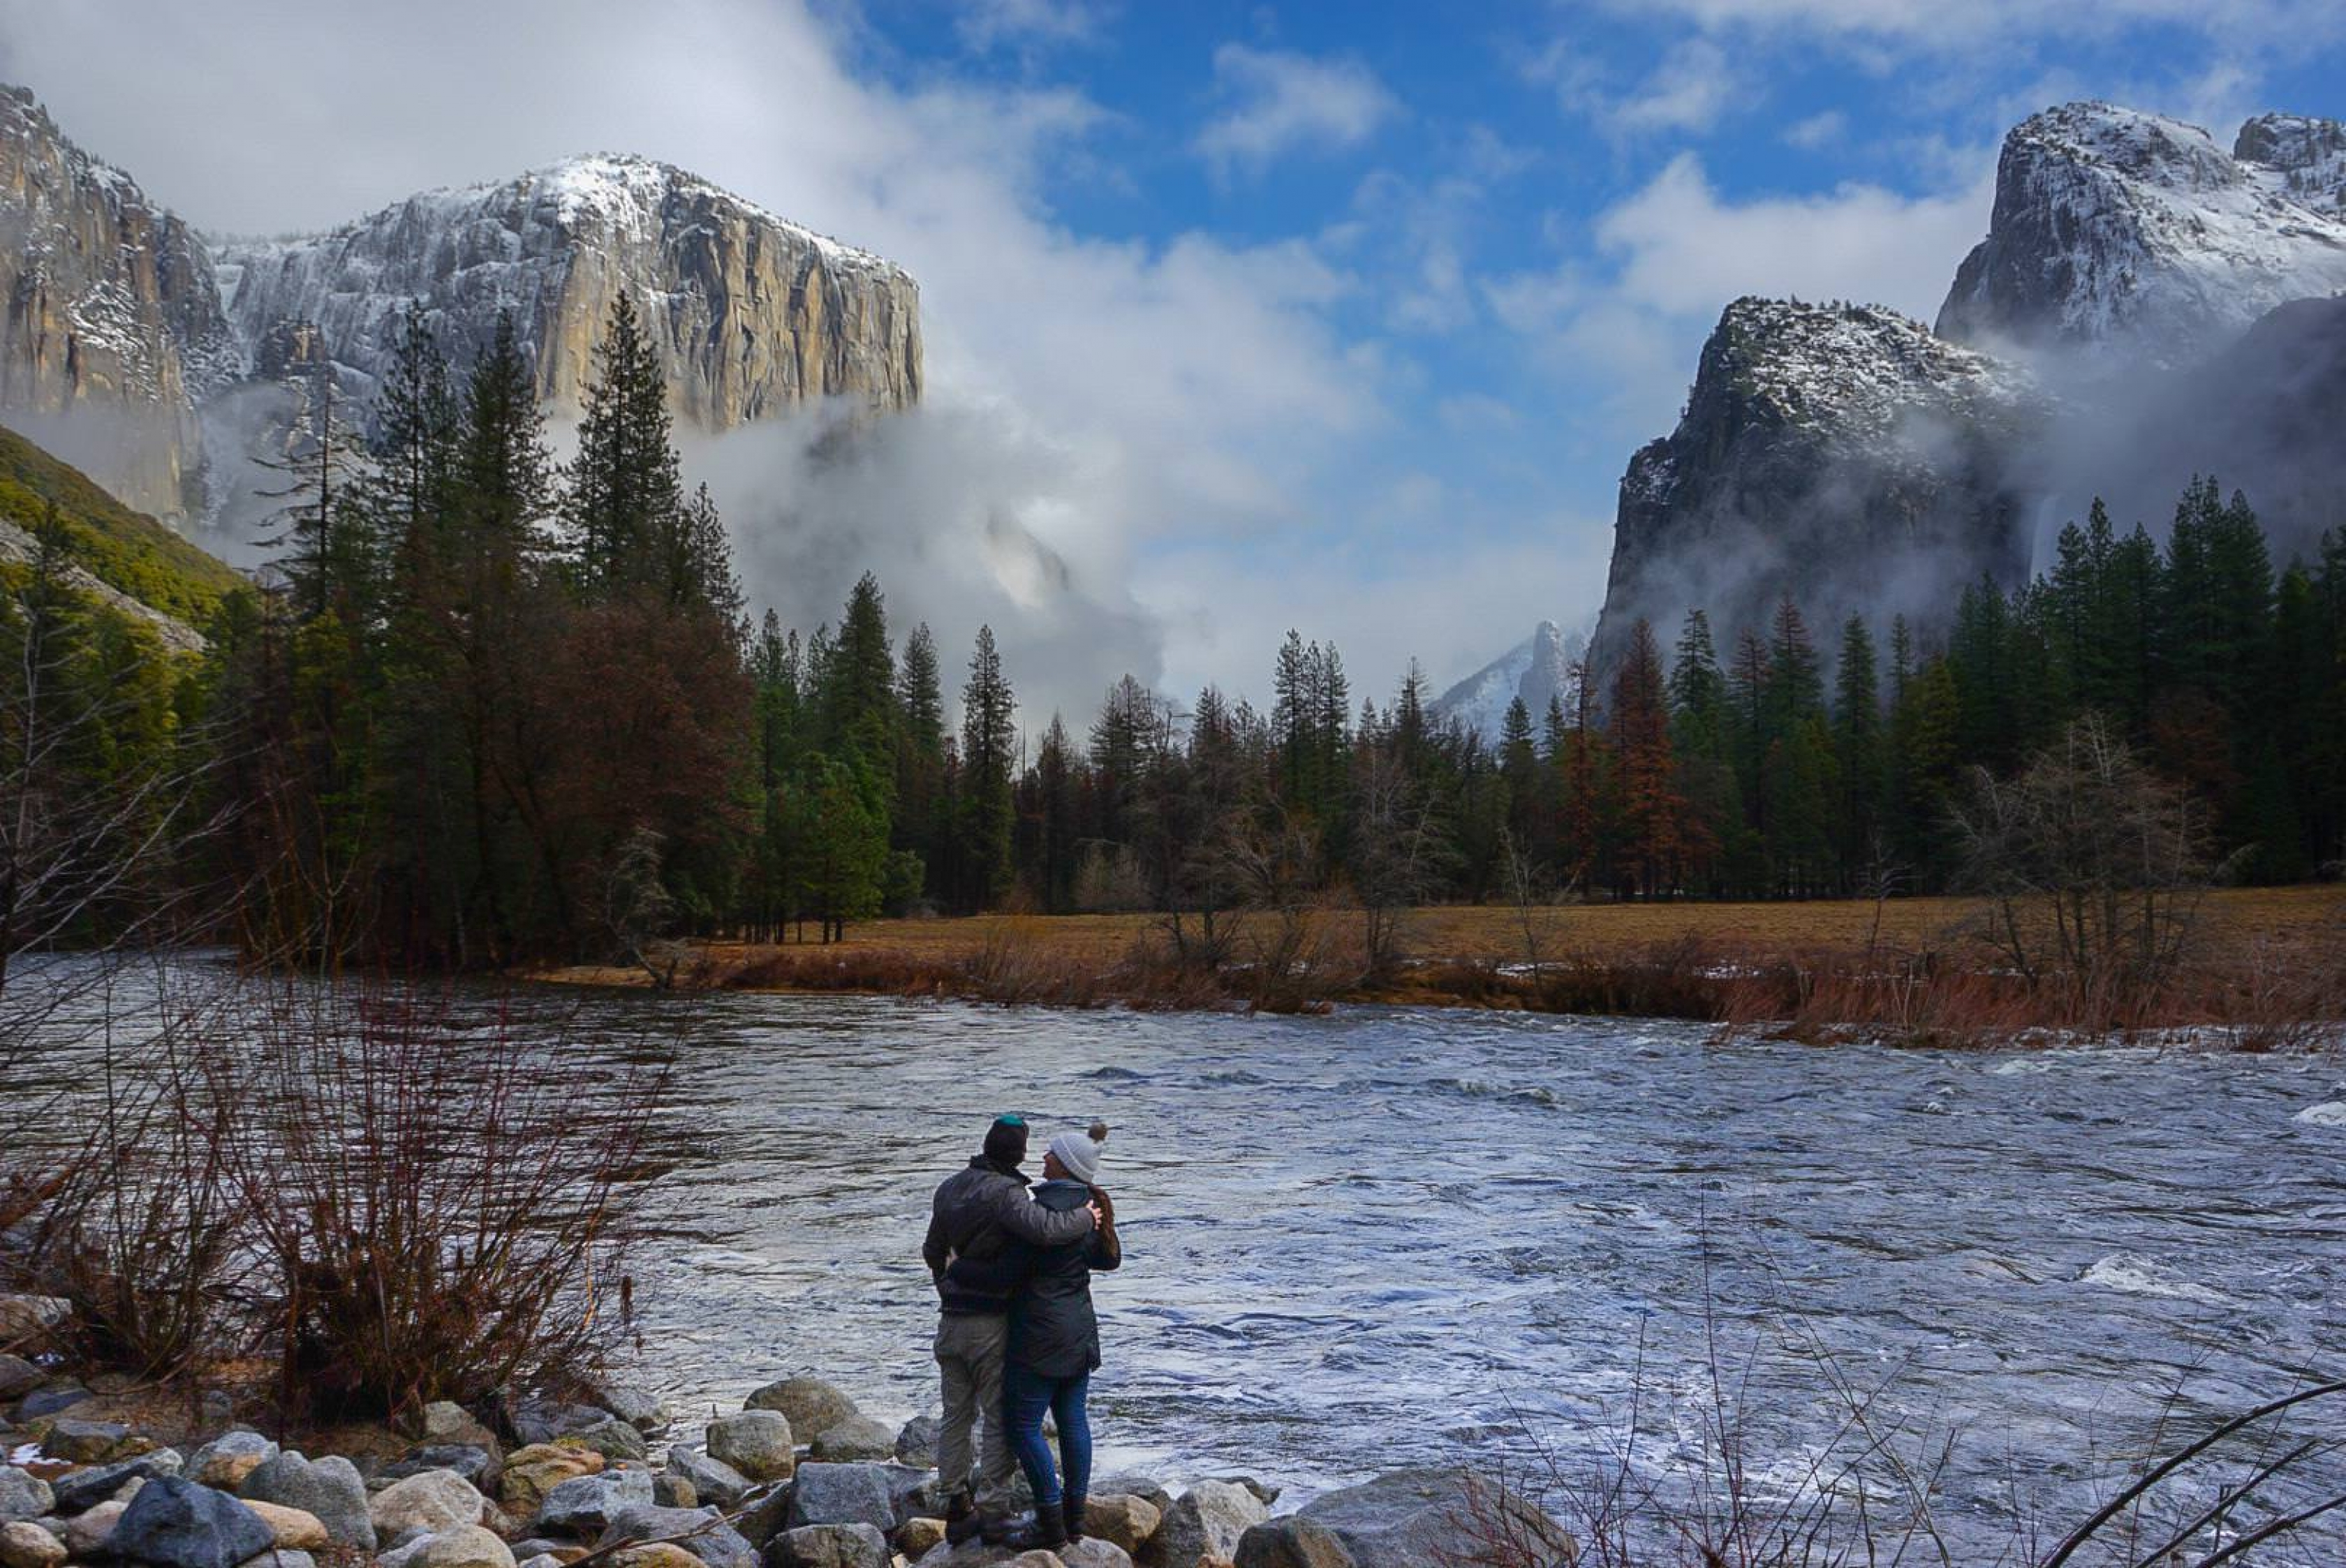 A couple in Yosemite in National Park.